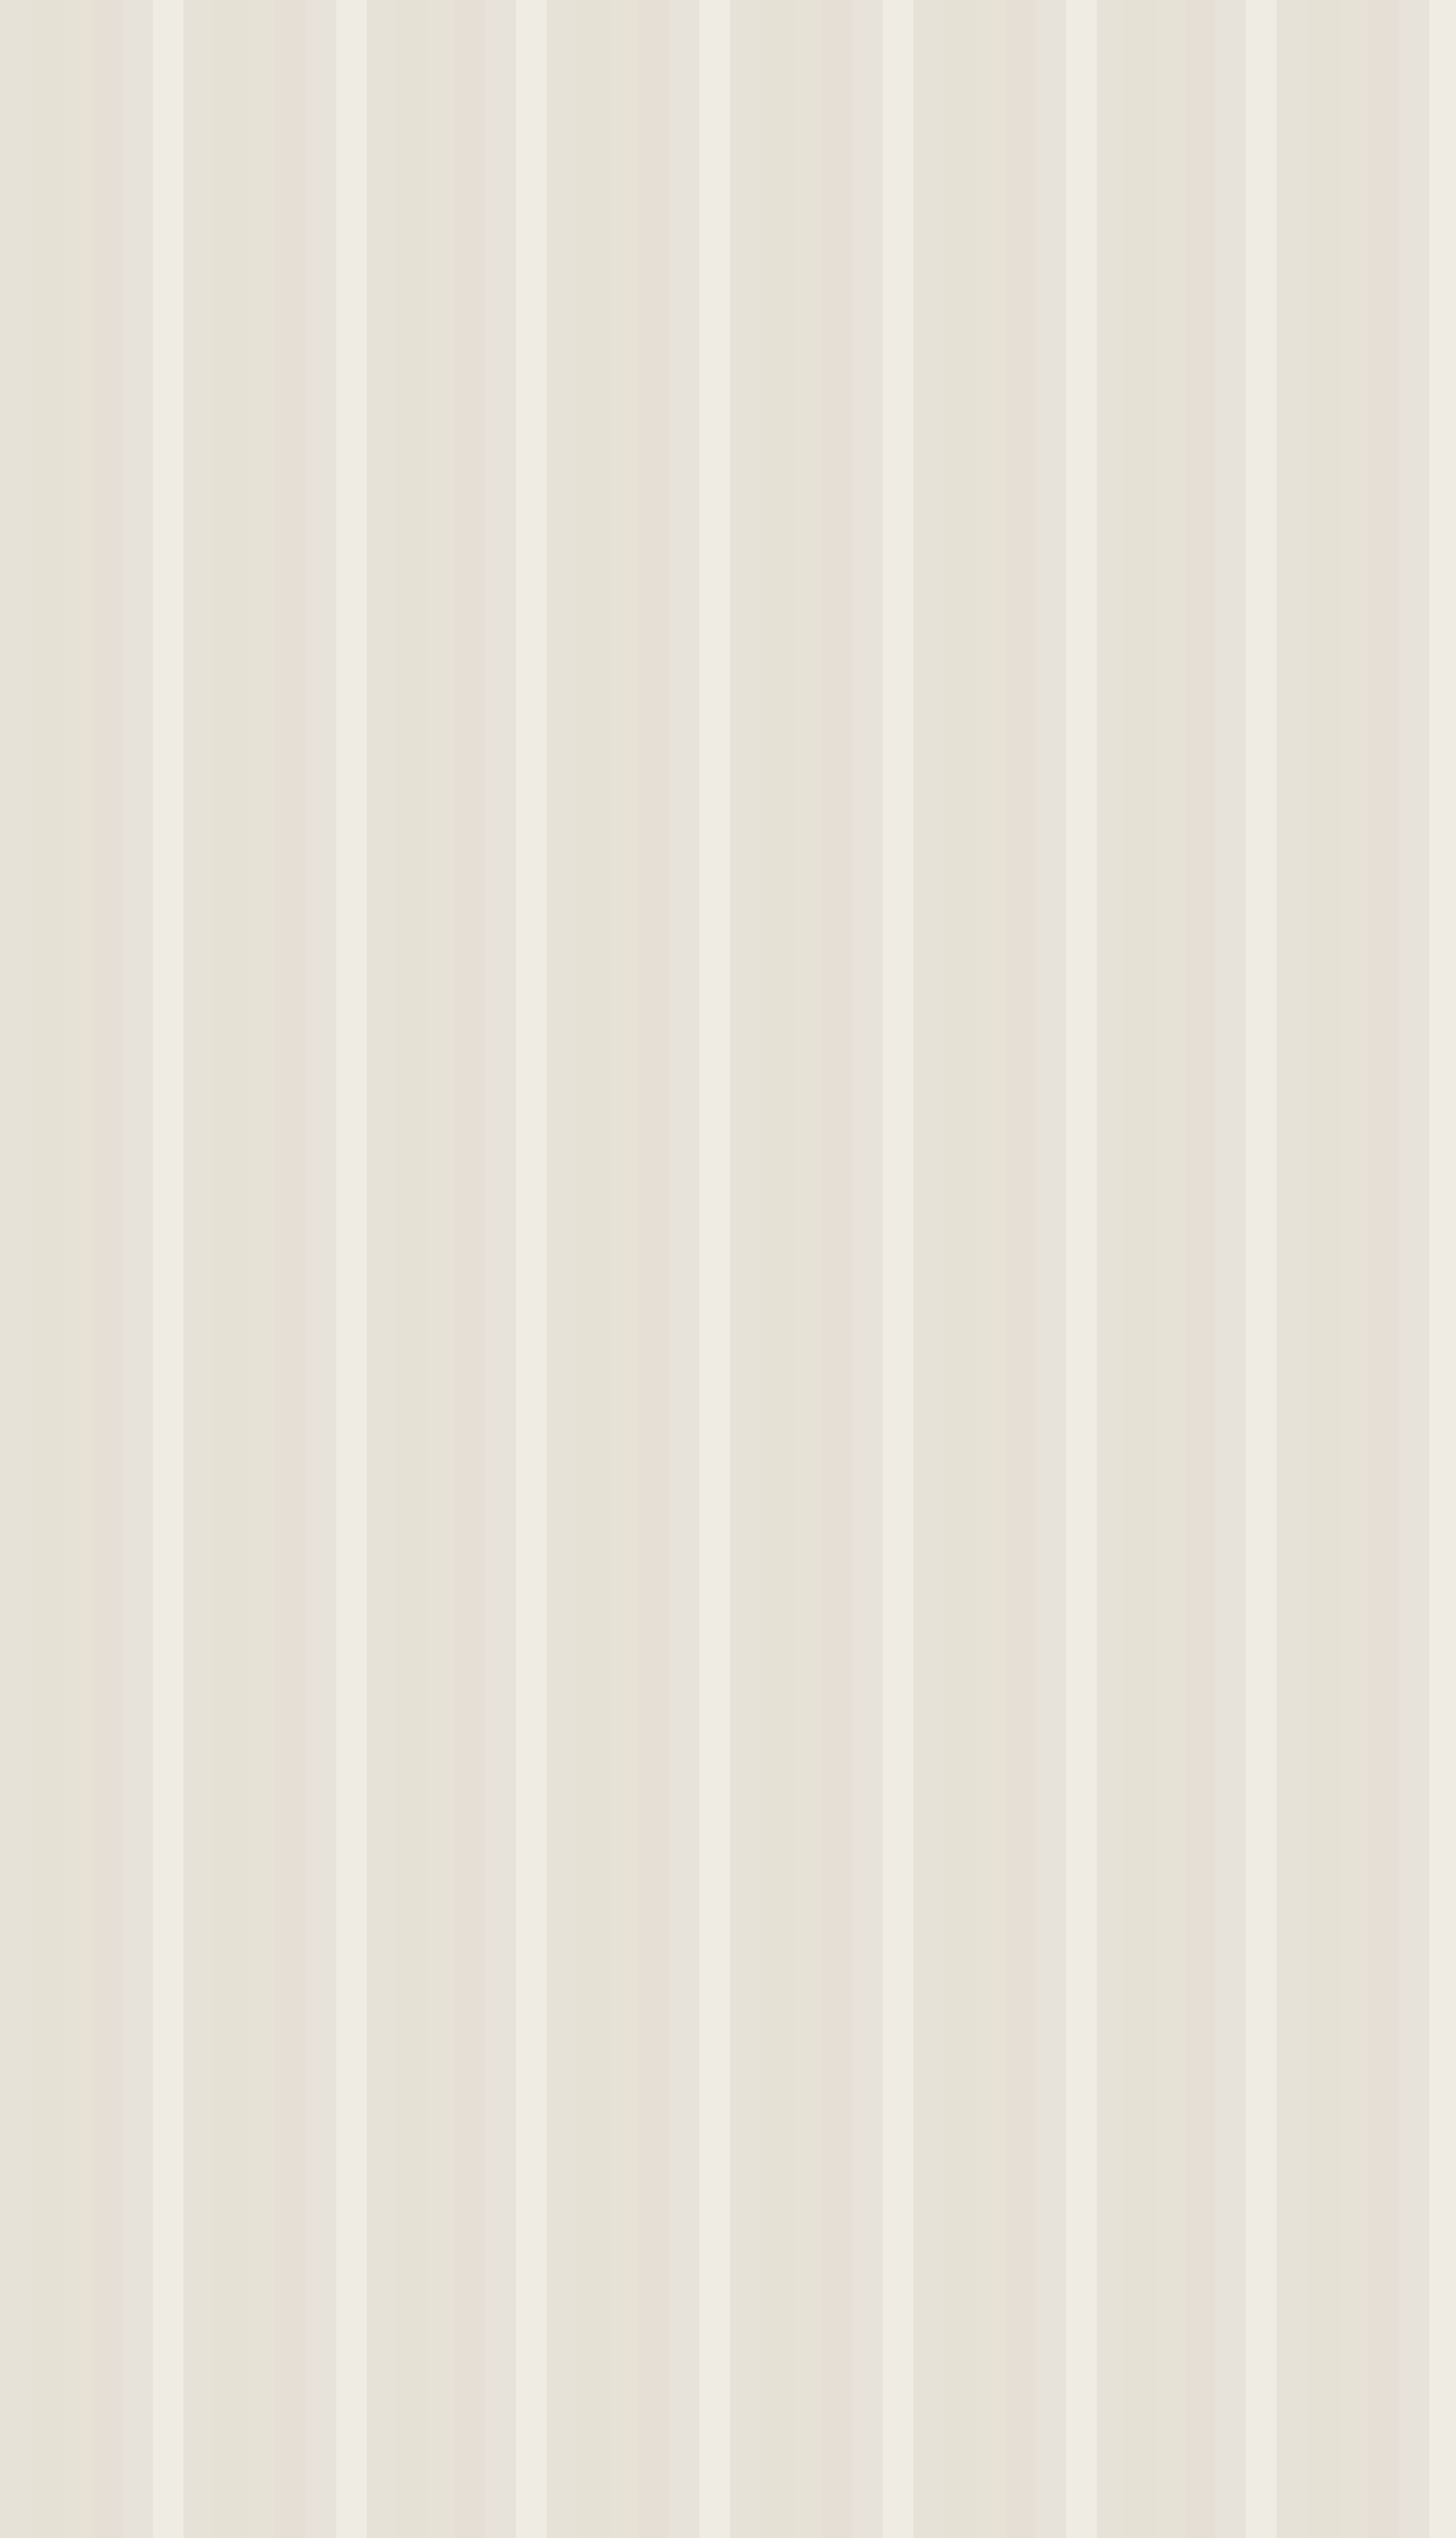 Plain Gray Vertical Stripes by MzzAzn